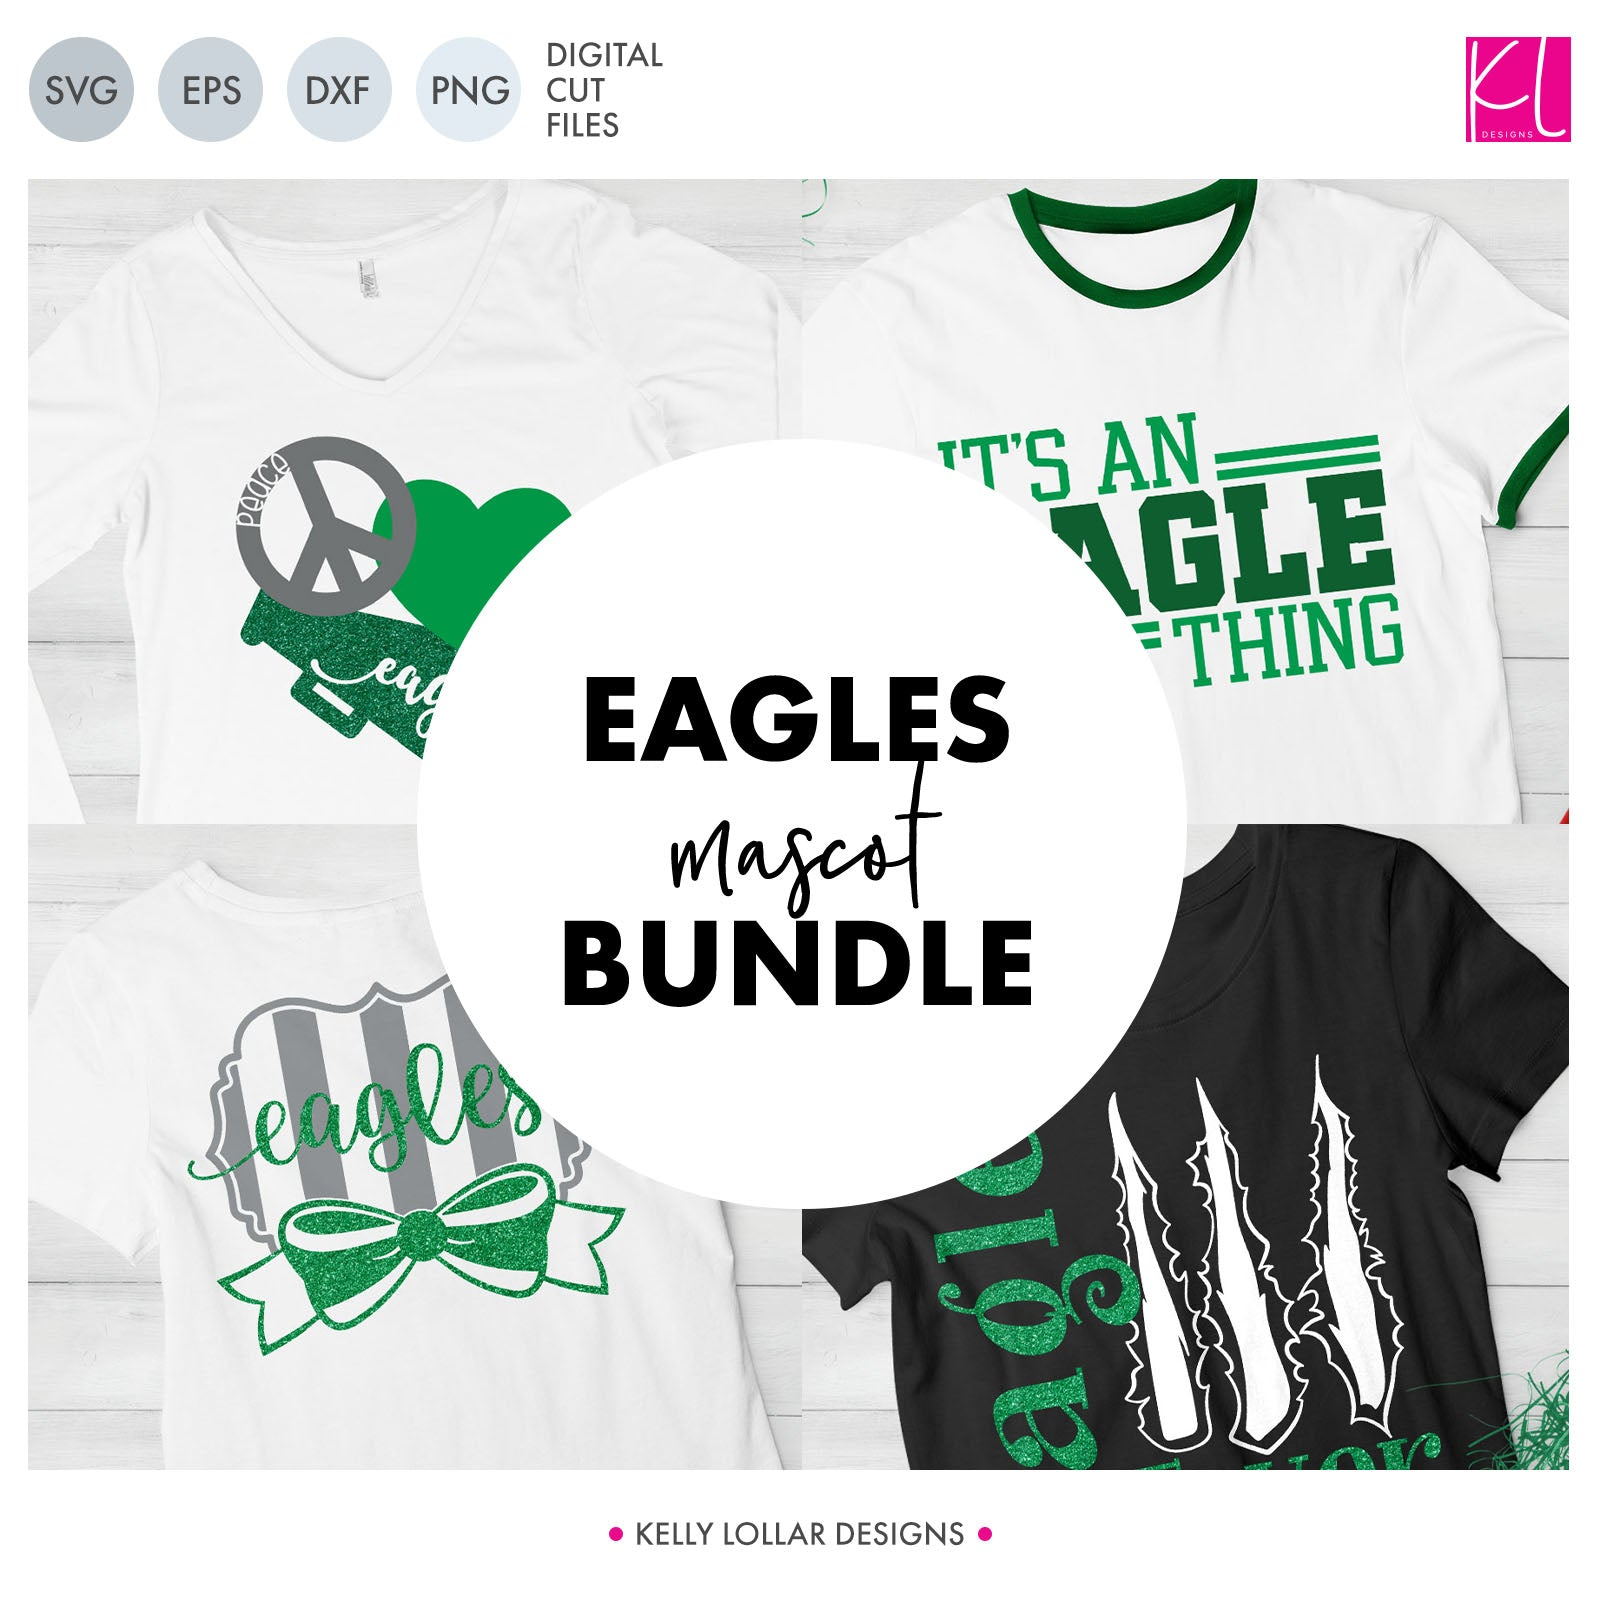 Eagles Mascot Bundle | SVG DXF EPS PNG Cut Files A perfect bundle for Eagles school spirit crafters! This set of 28 designs includes everything from cute and girly to unisex so you'll have a little something for everyone. Includes